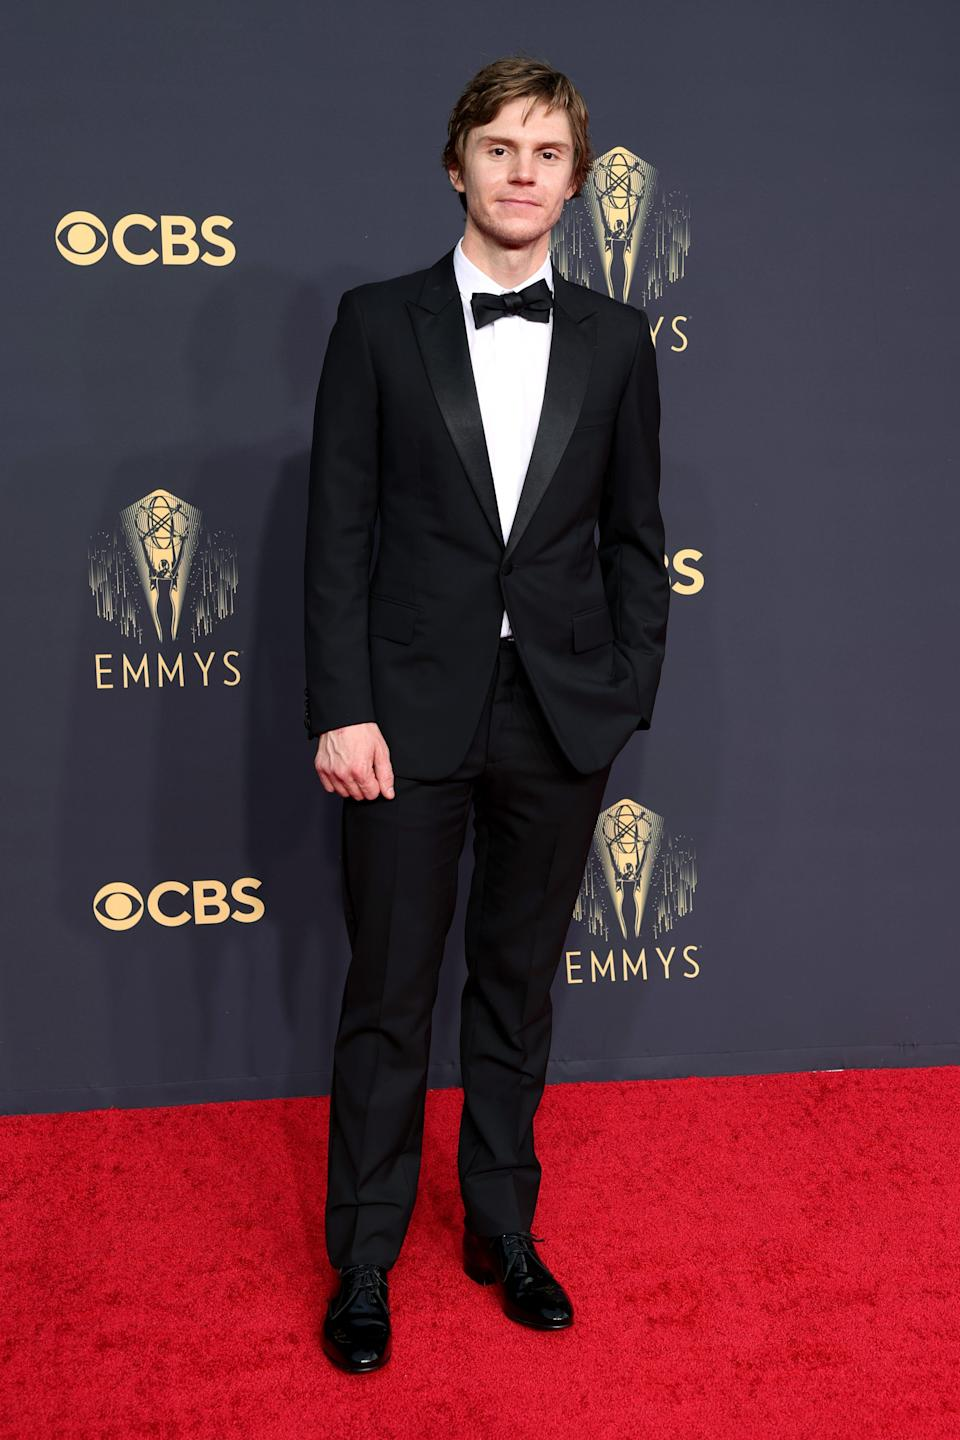 Evan Peters attends the 2021 Emmys.